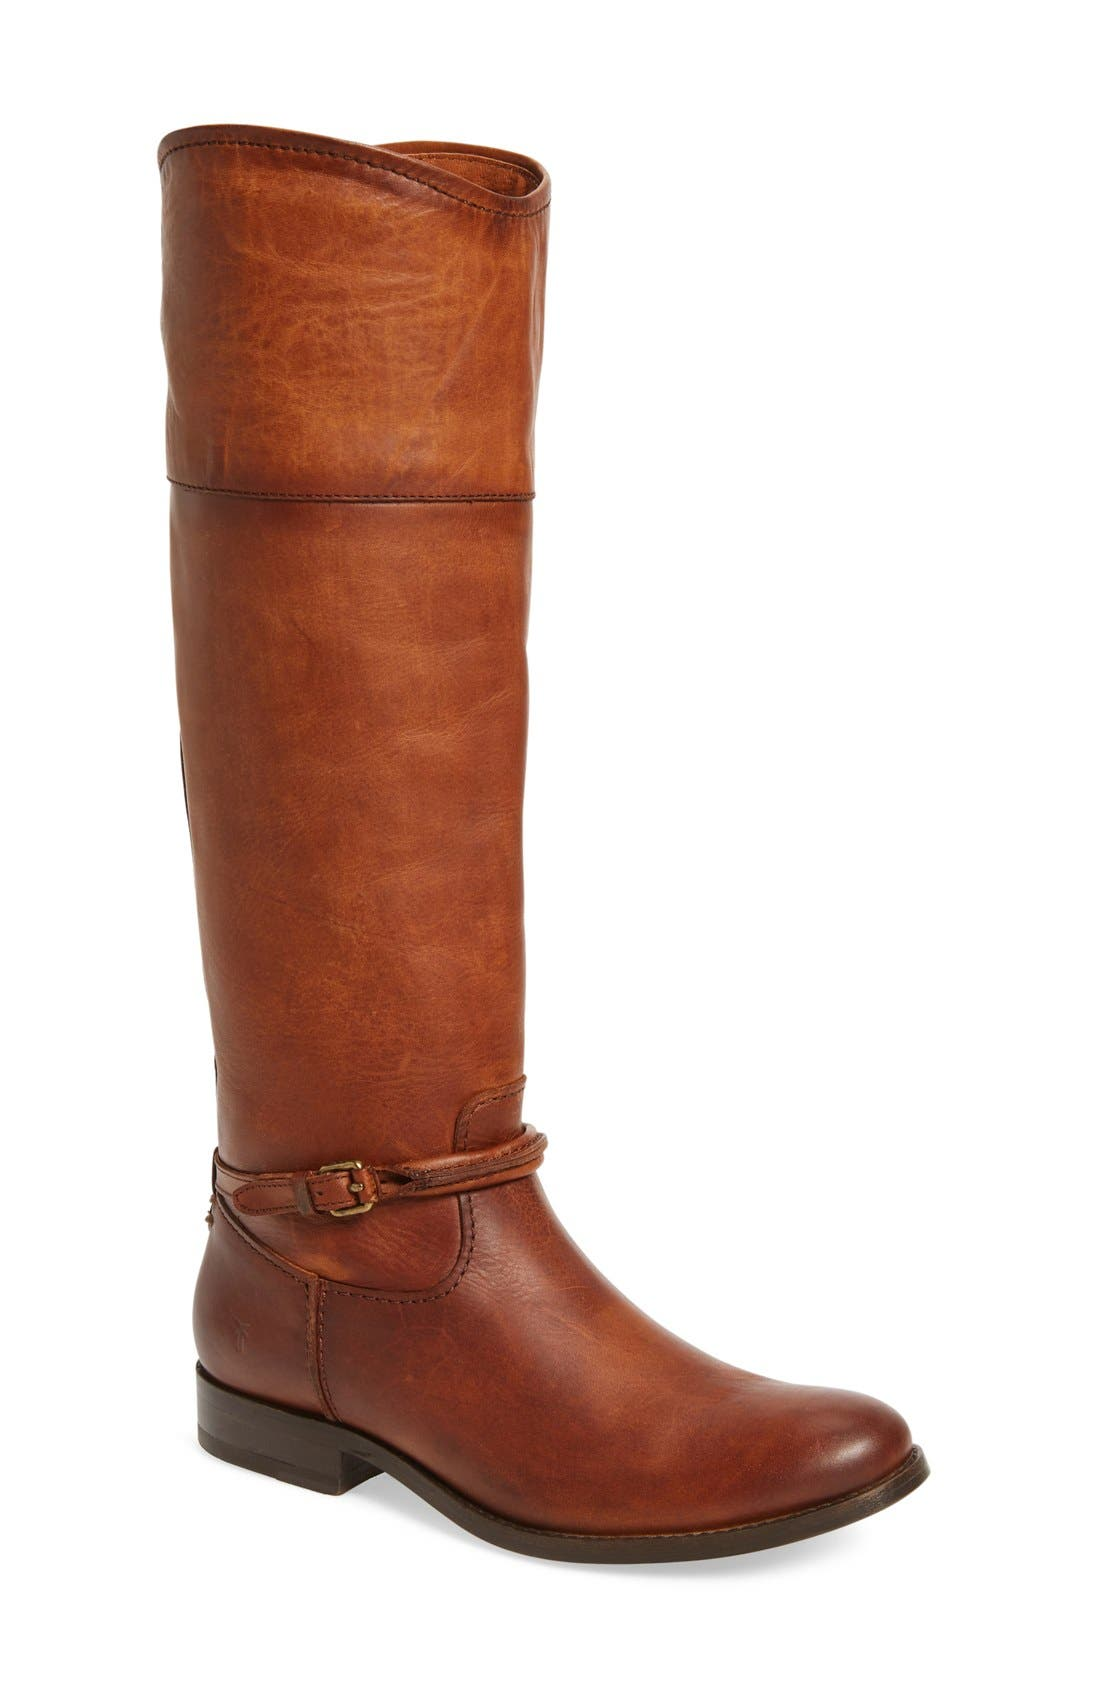 Main Image - Frye Melissa Seam Boot (Women)